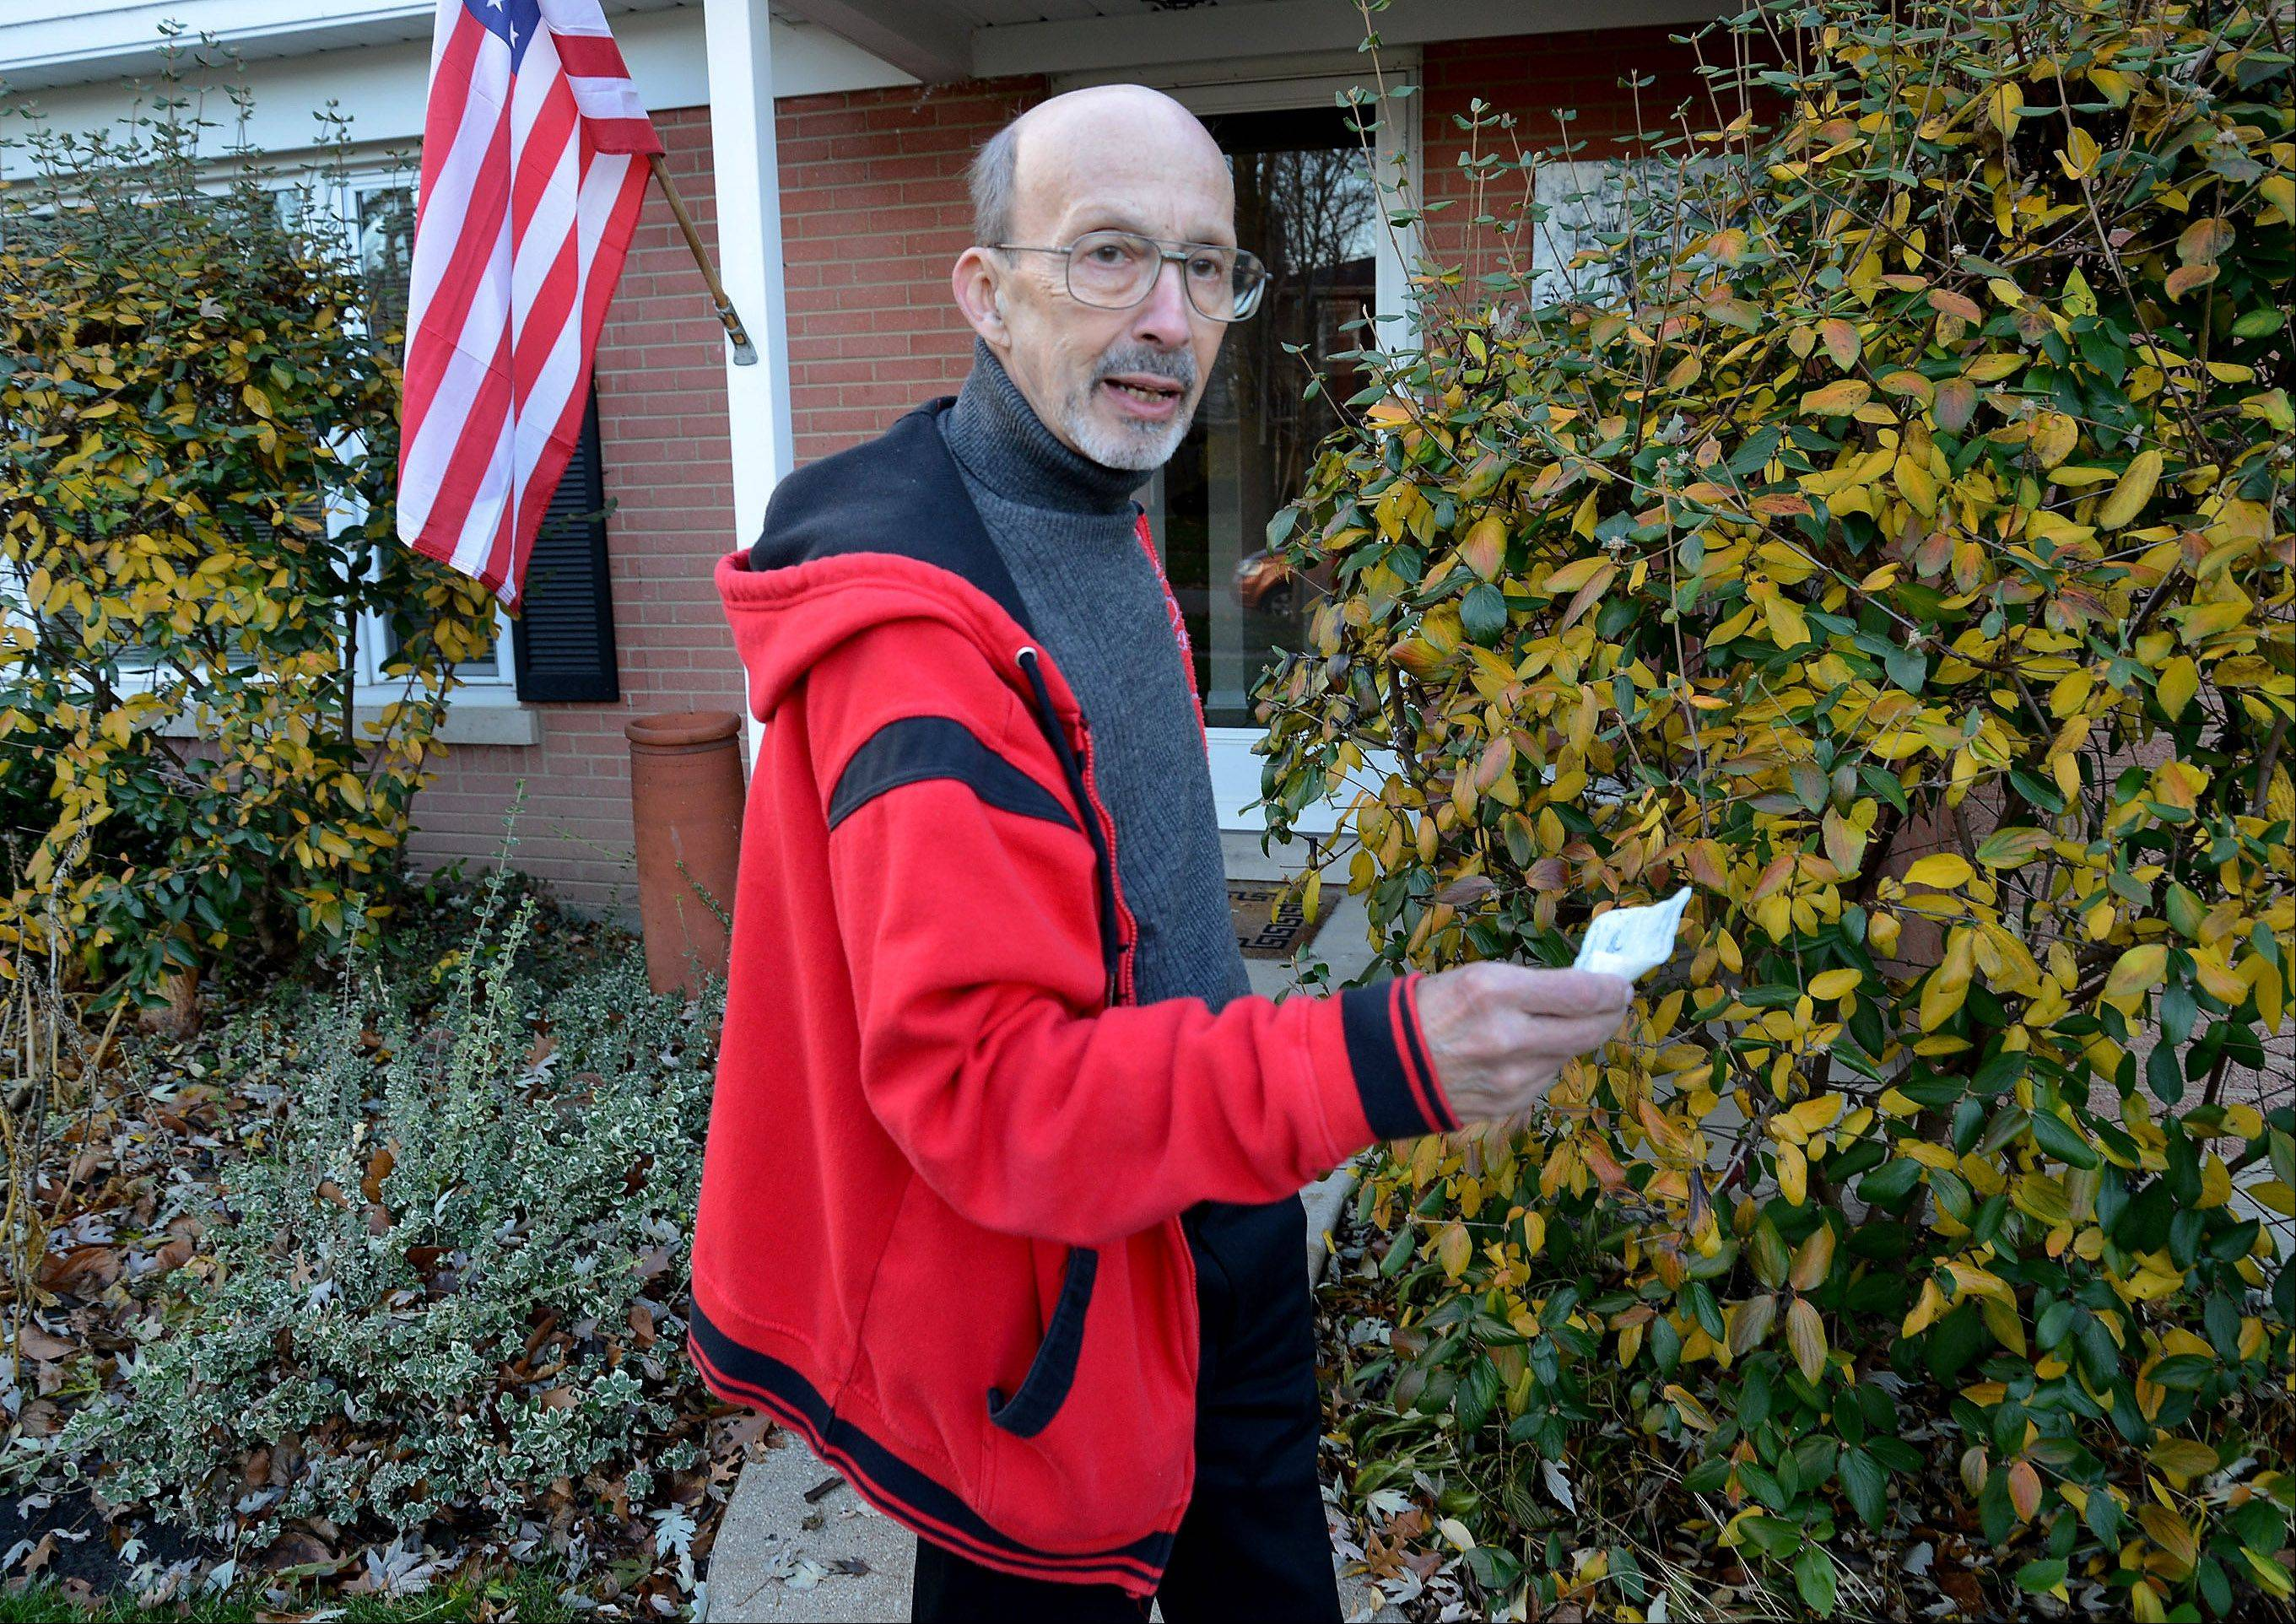 Lou Blanc of Arlington Heights said he's hoping to eventually connect with the Washington, Ill., resident whose personal check wound up in Blanc's front yard.